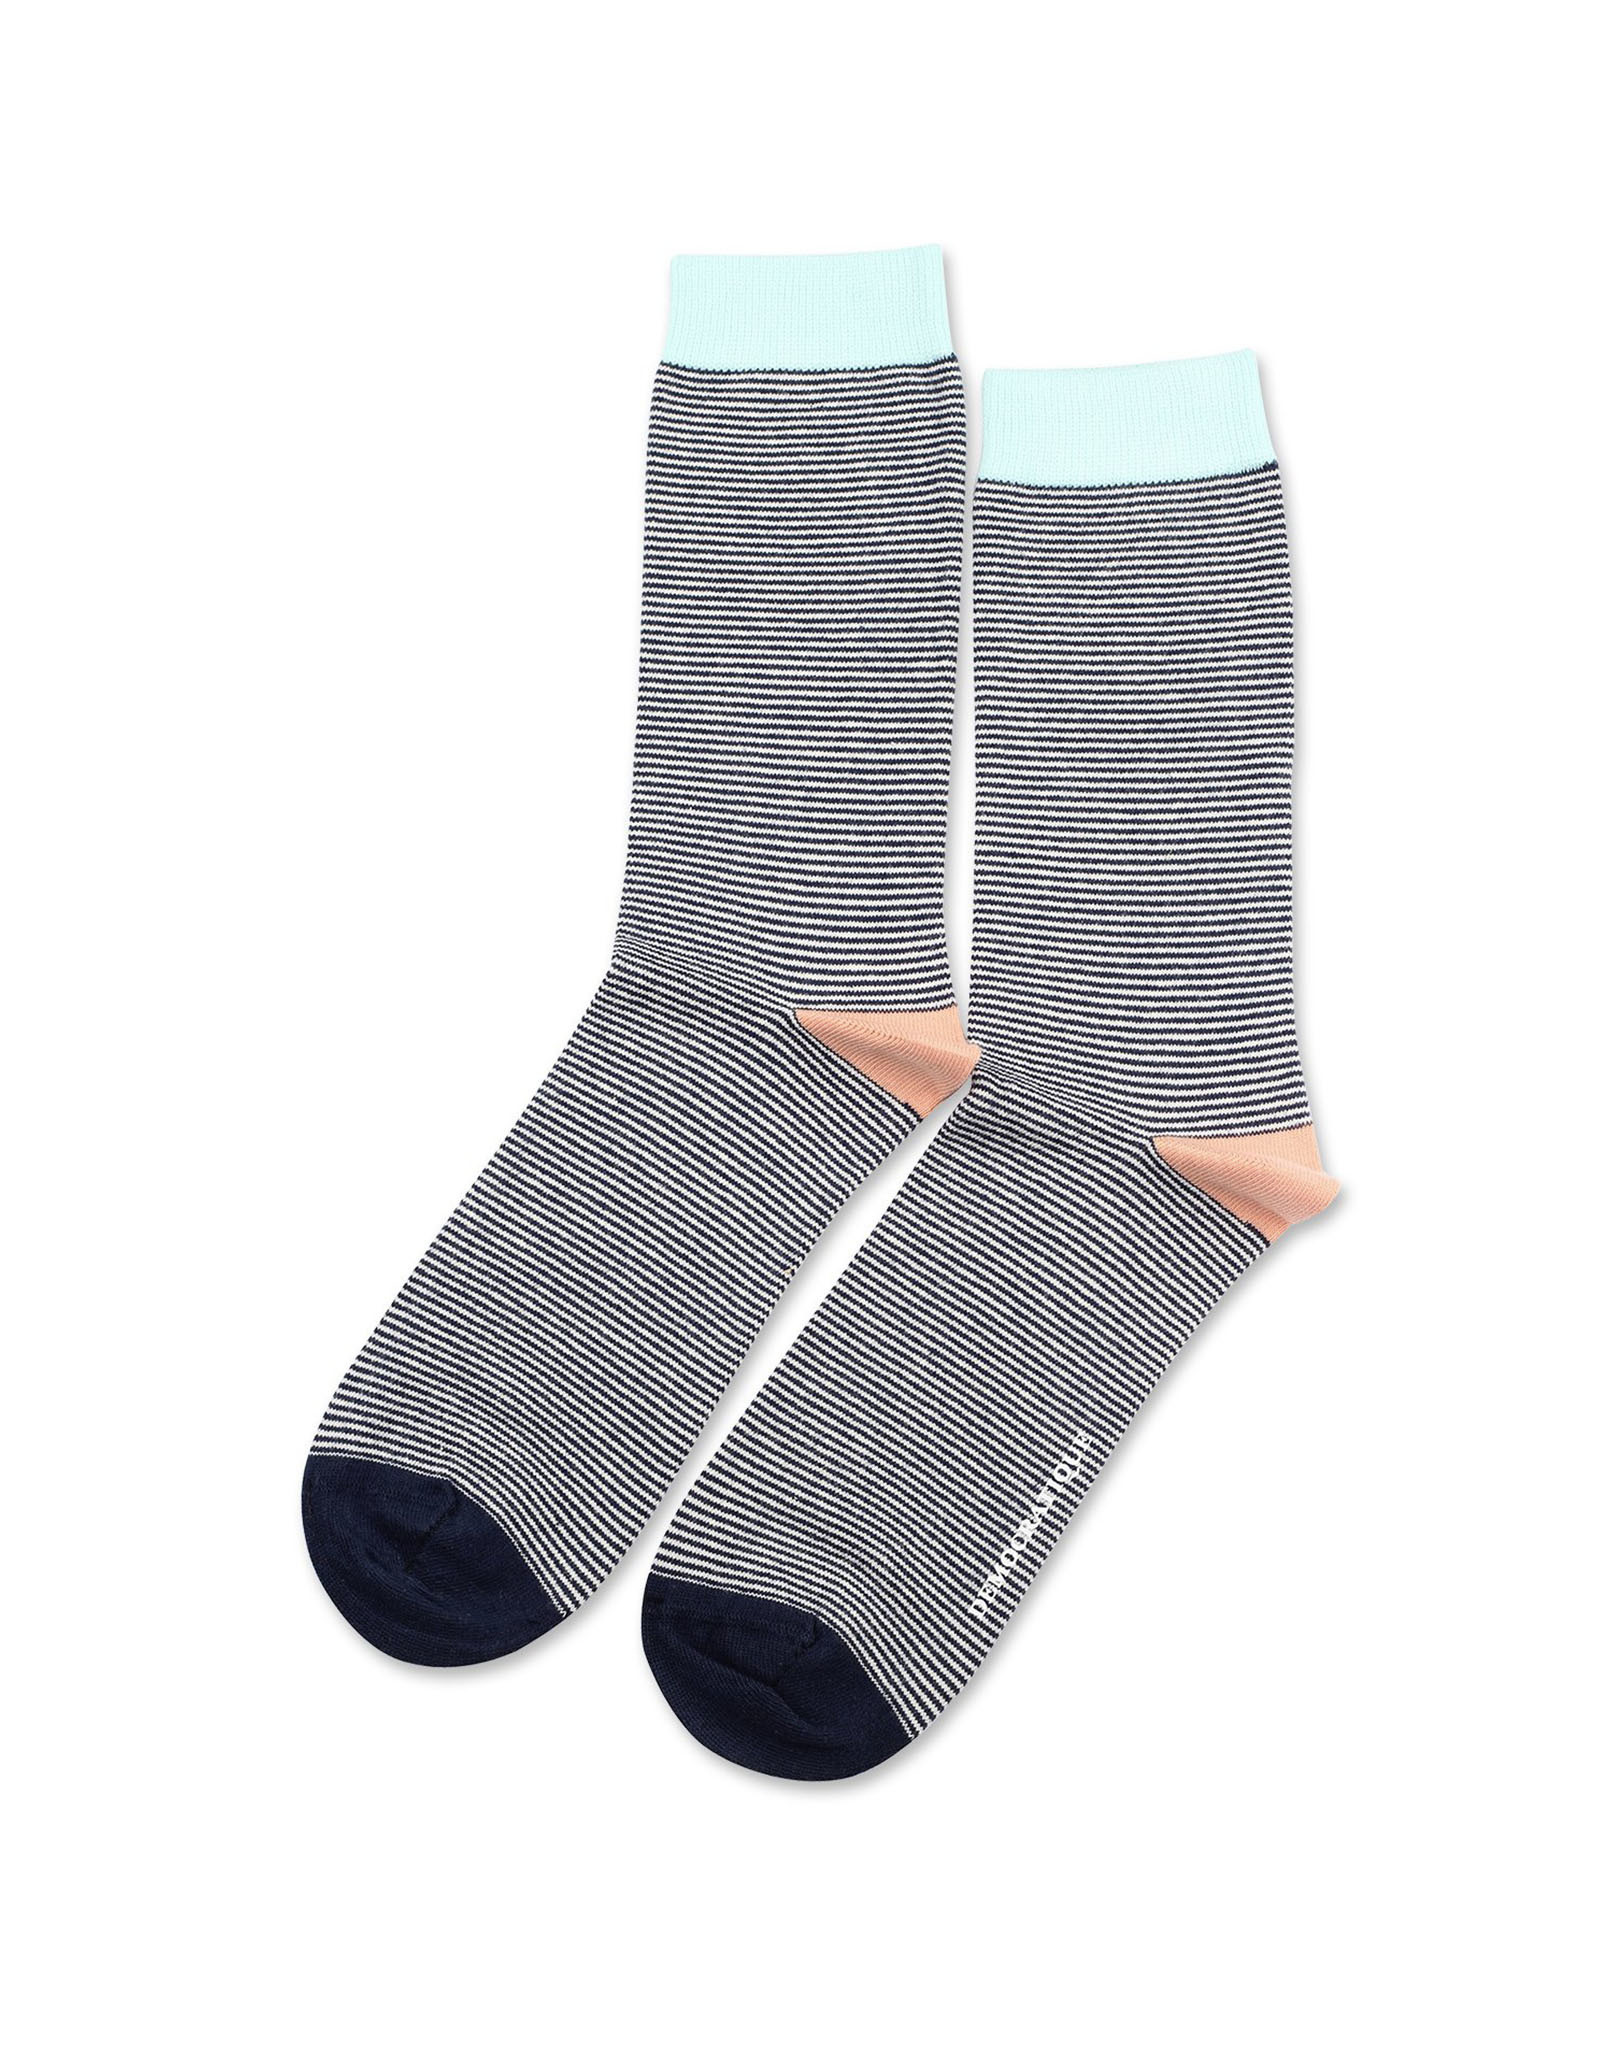 Democratique Ultralight Socks | Navy/Off-White/Salmon/Green